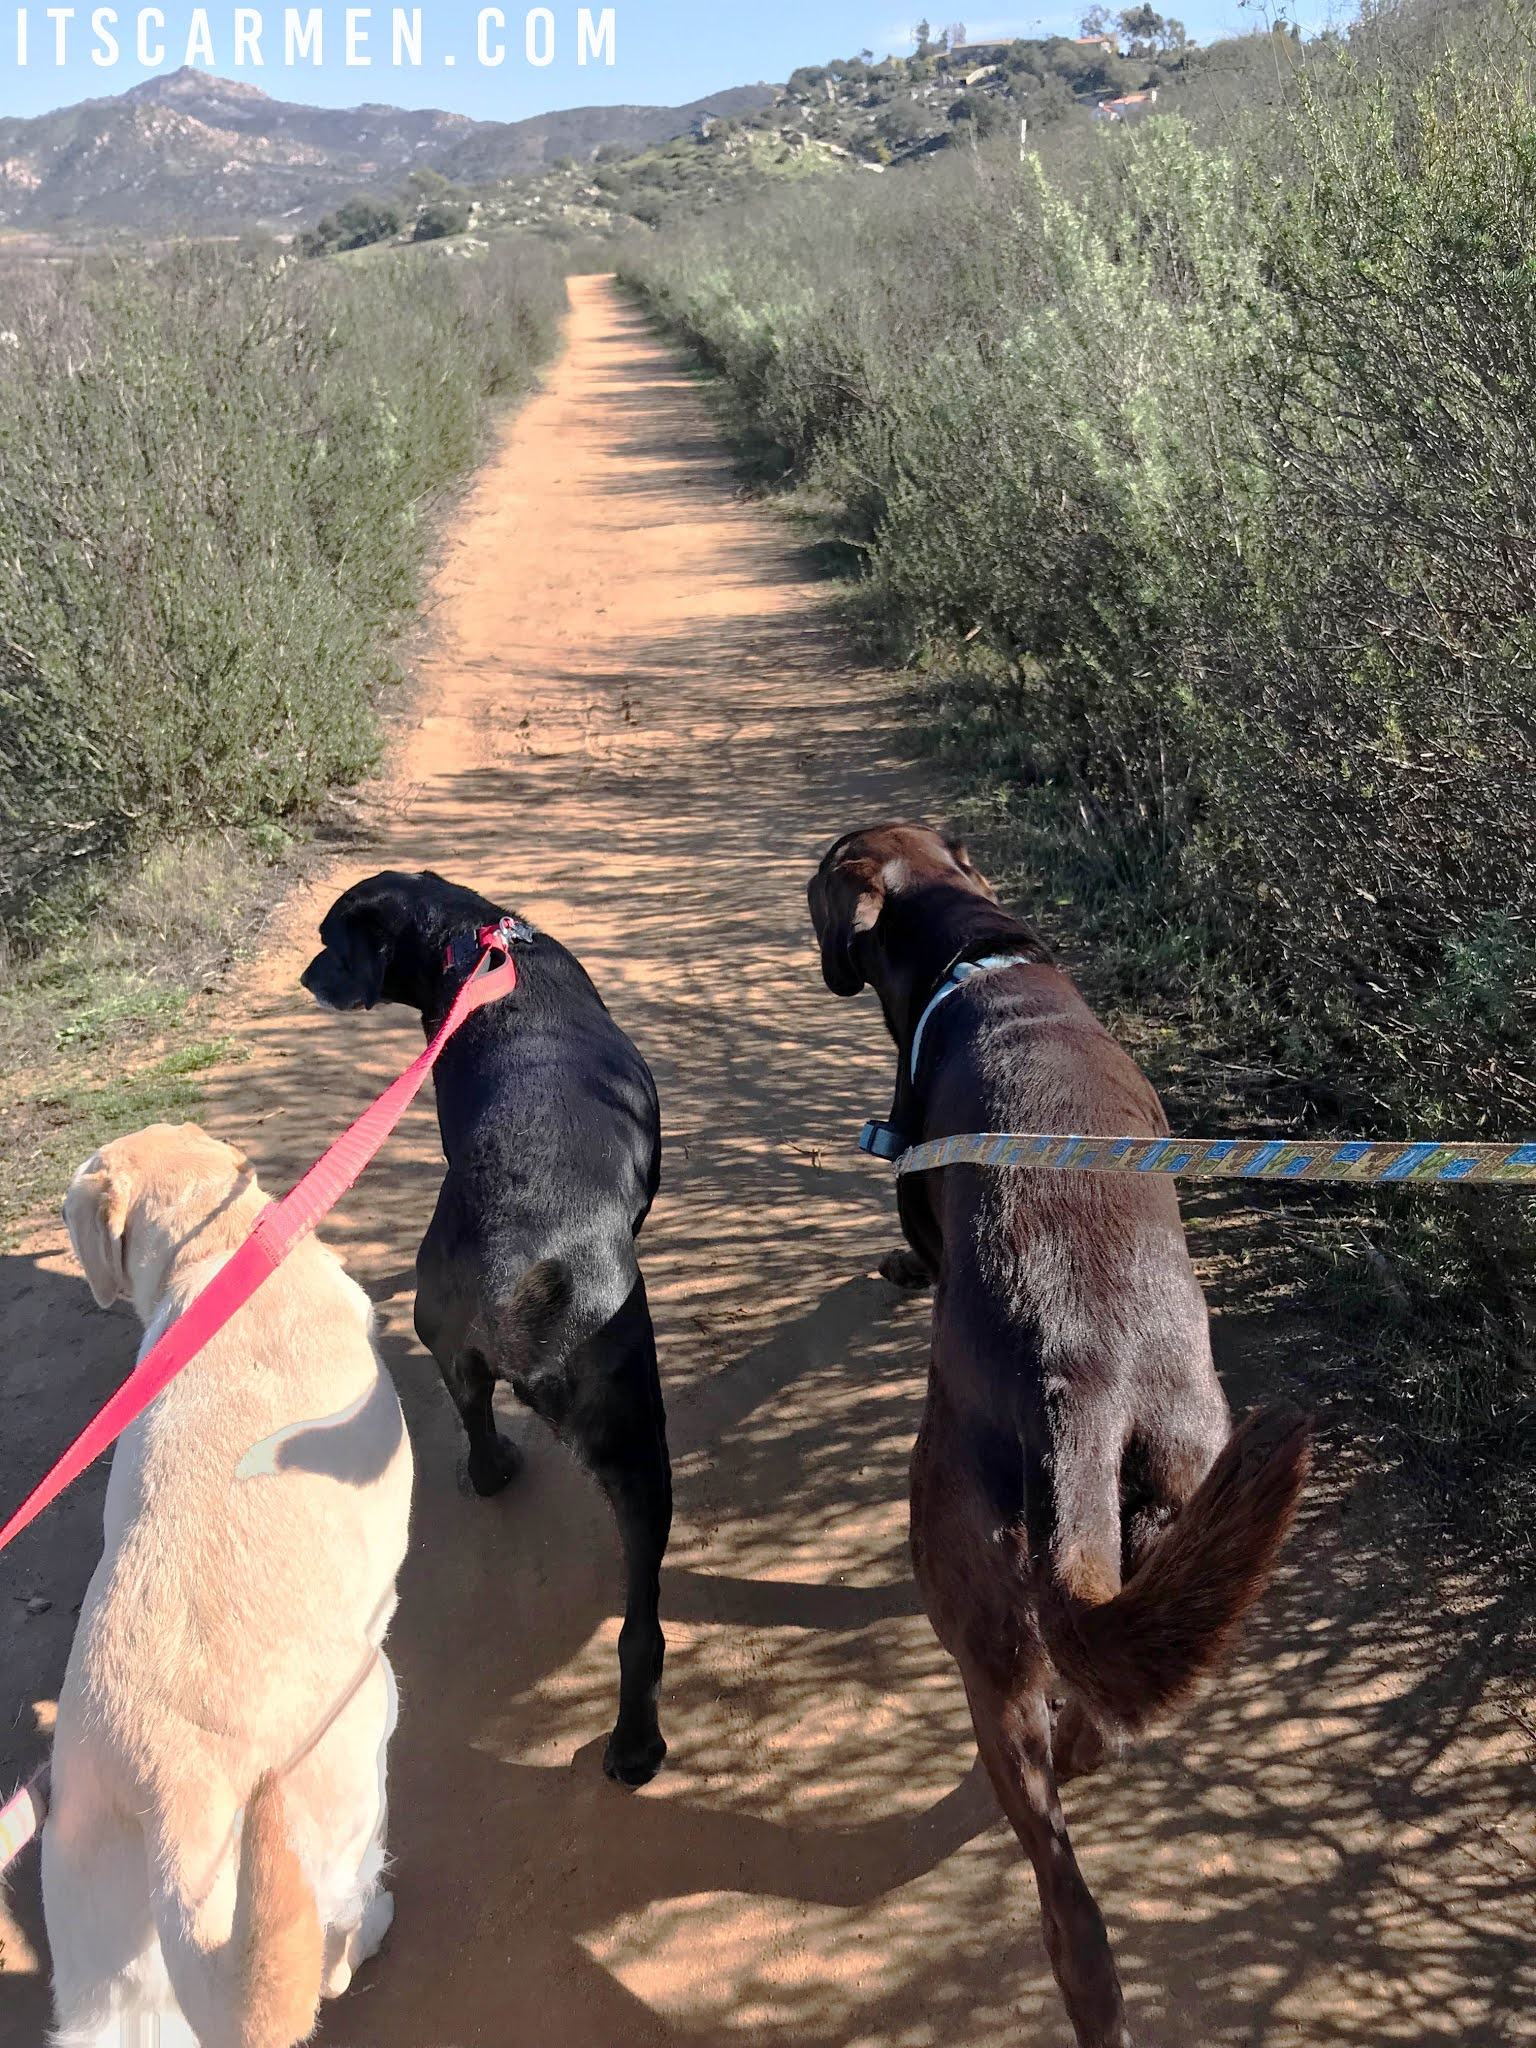 Hiking in Escondido & San Marcos, California - Things to Do in North County San Diego, California